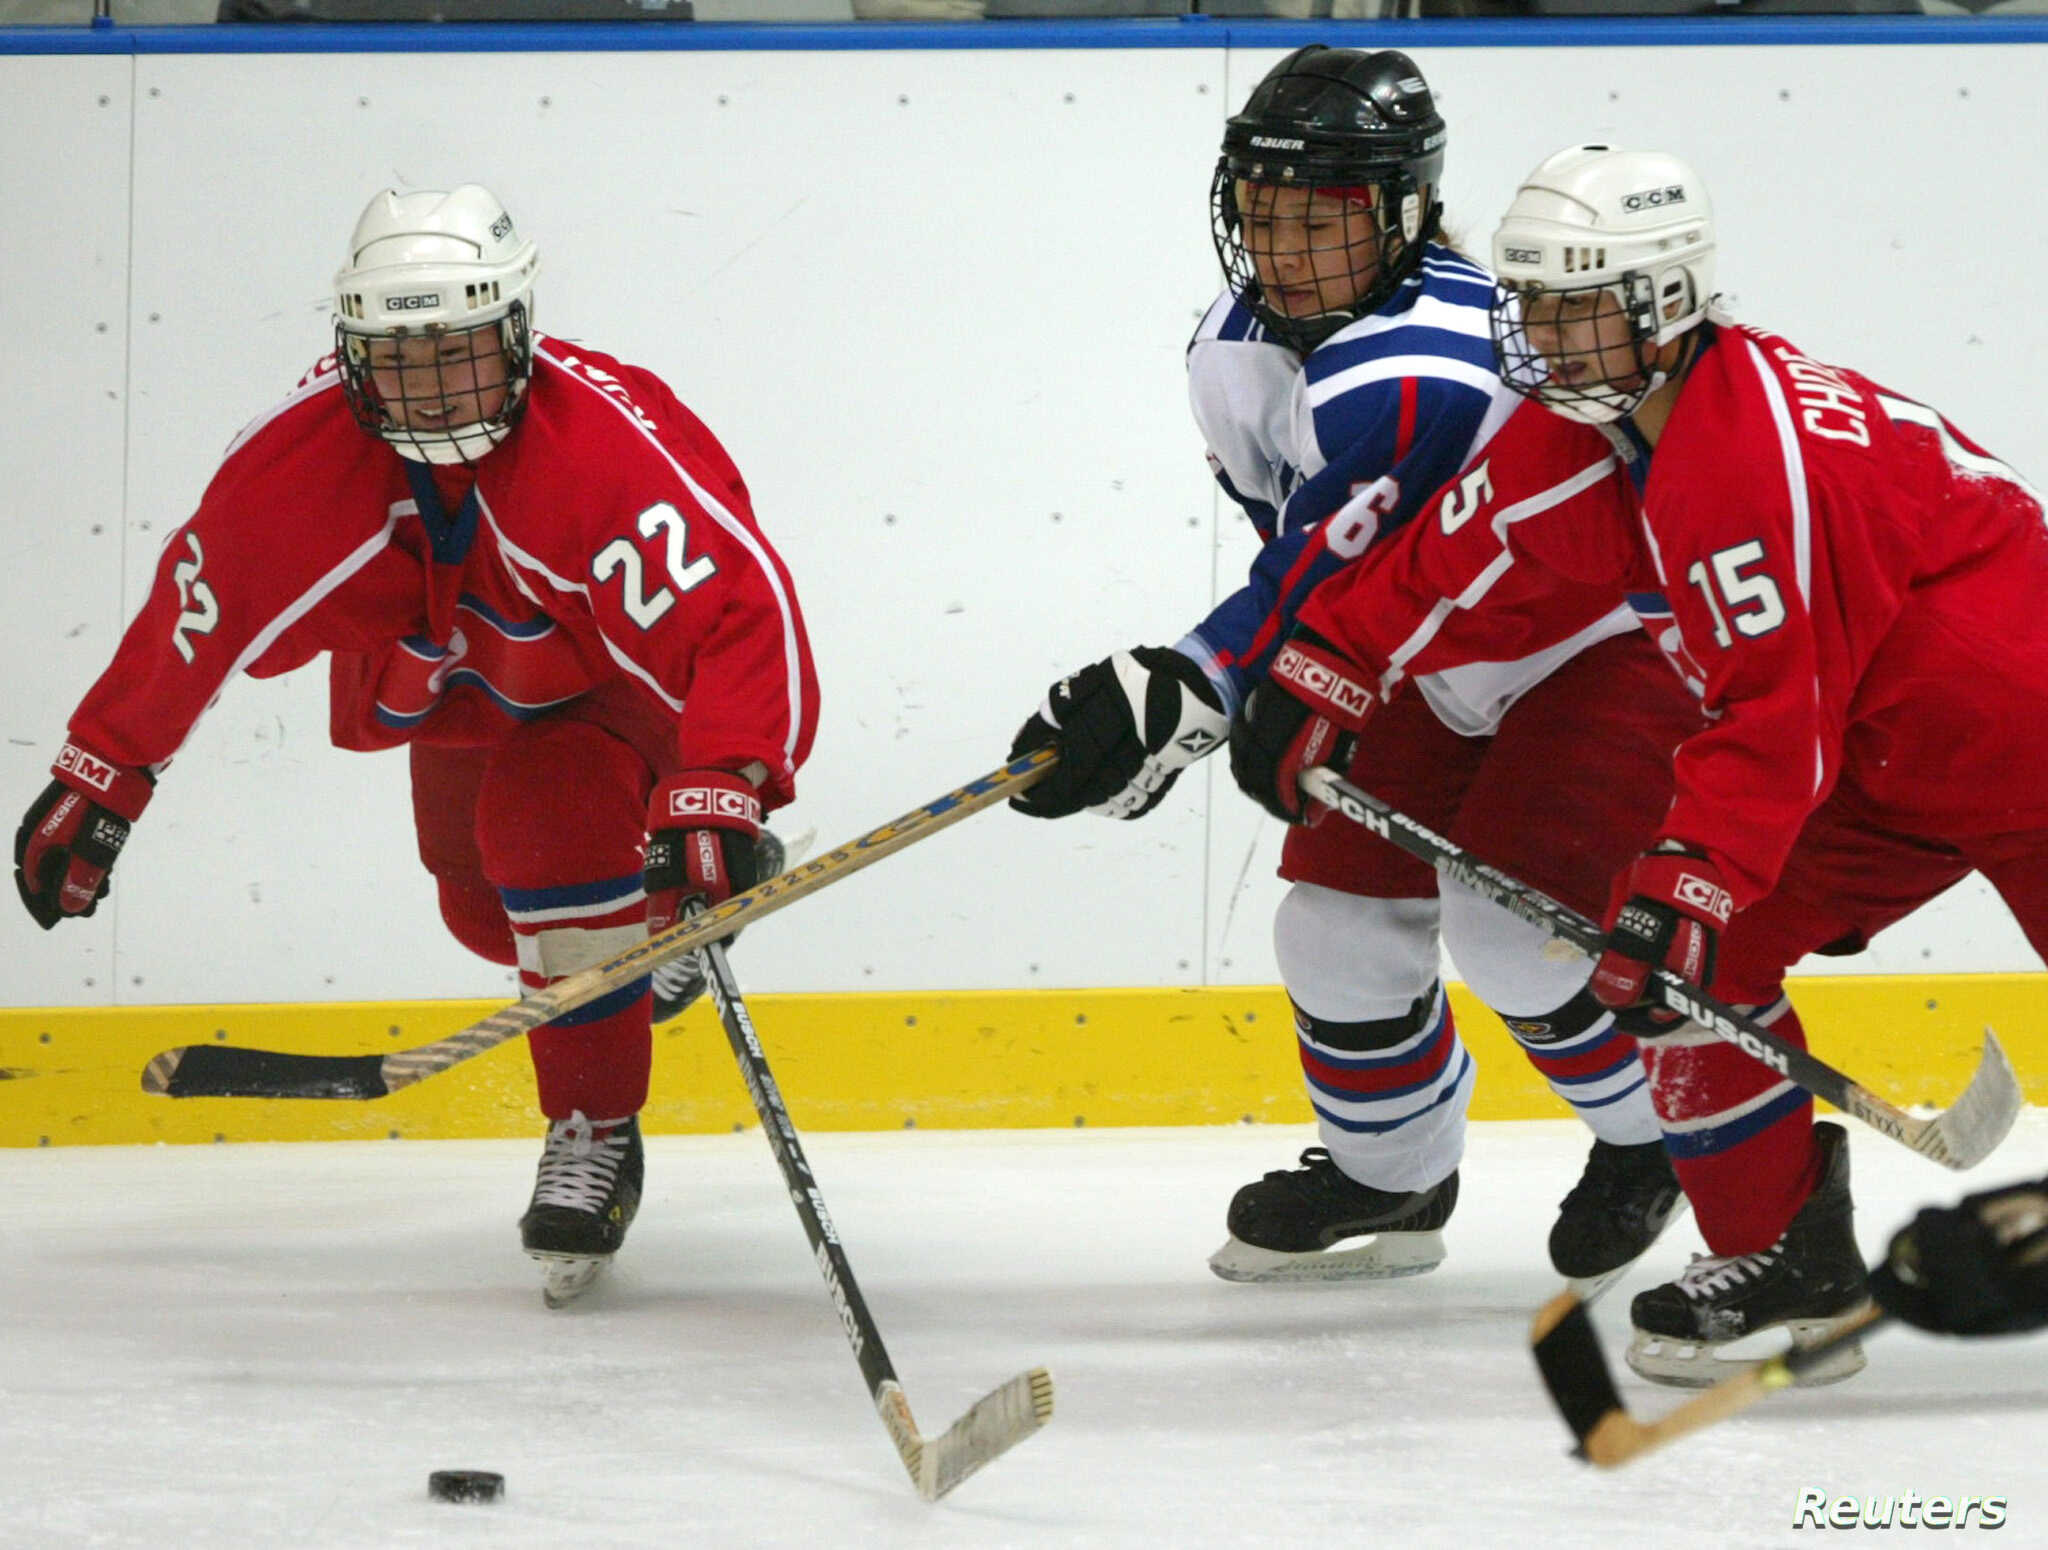 FILE - A South Korean player (white jersey) struggles for the puck during a women's ice hockey match at the fifth Winter Asian Games in Misawa, Japan Feb. 3, 2003.